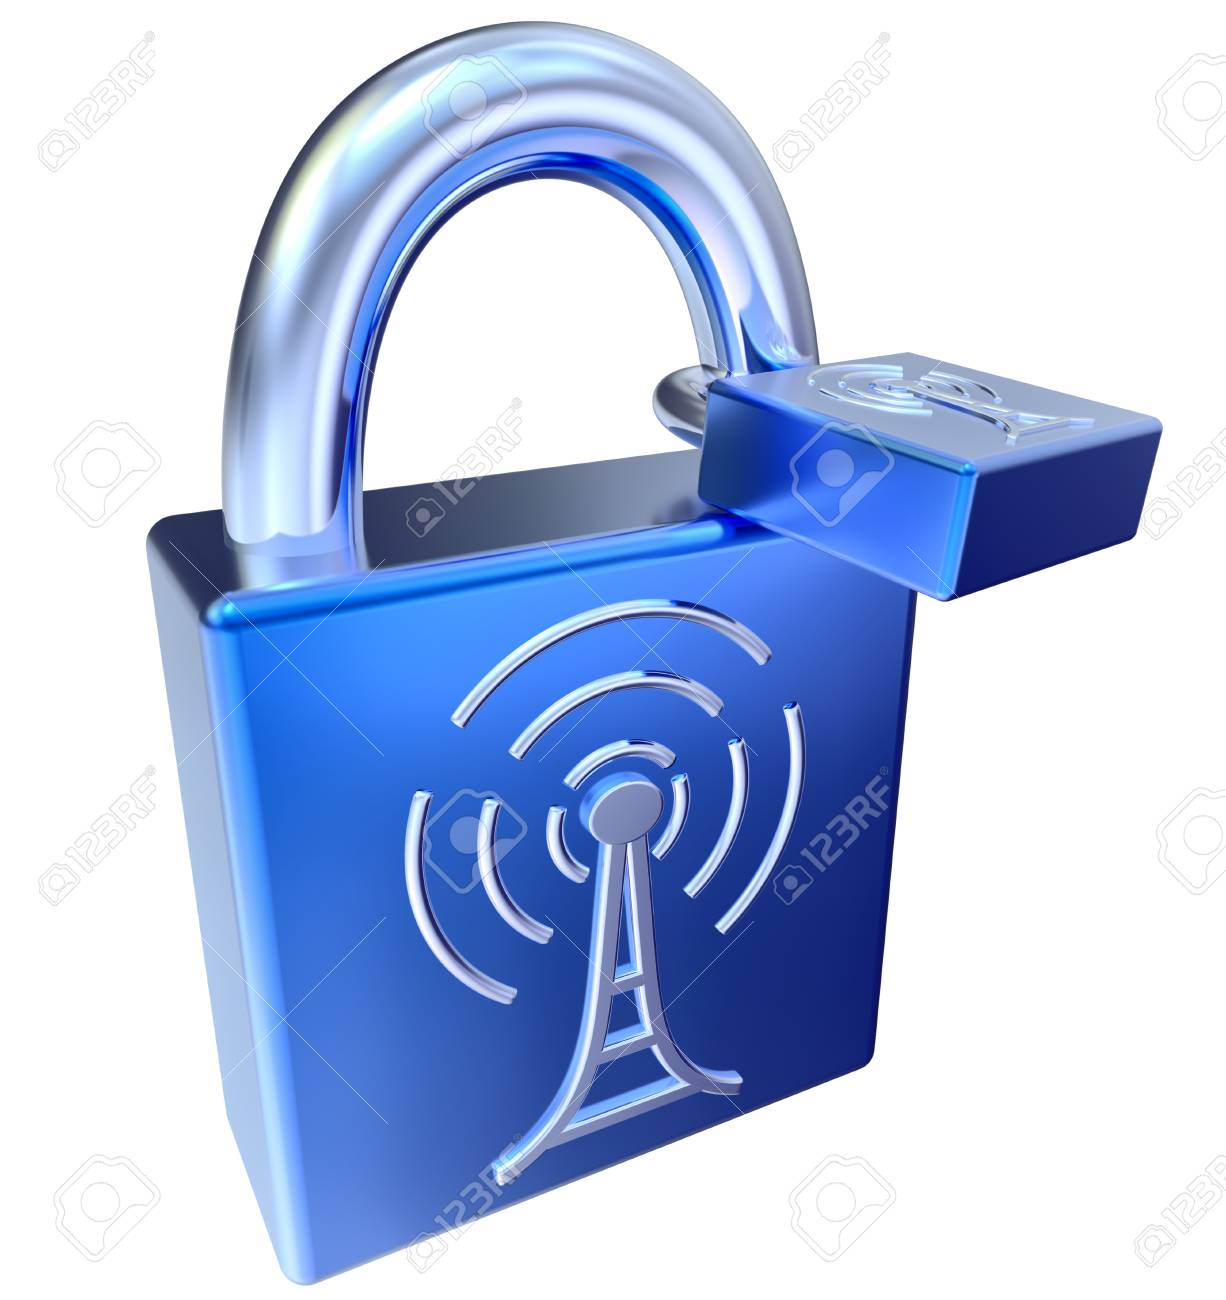 lock icons as symbol locked signals Stock Photo - 21497999